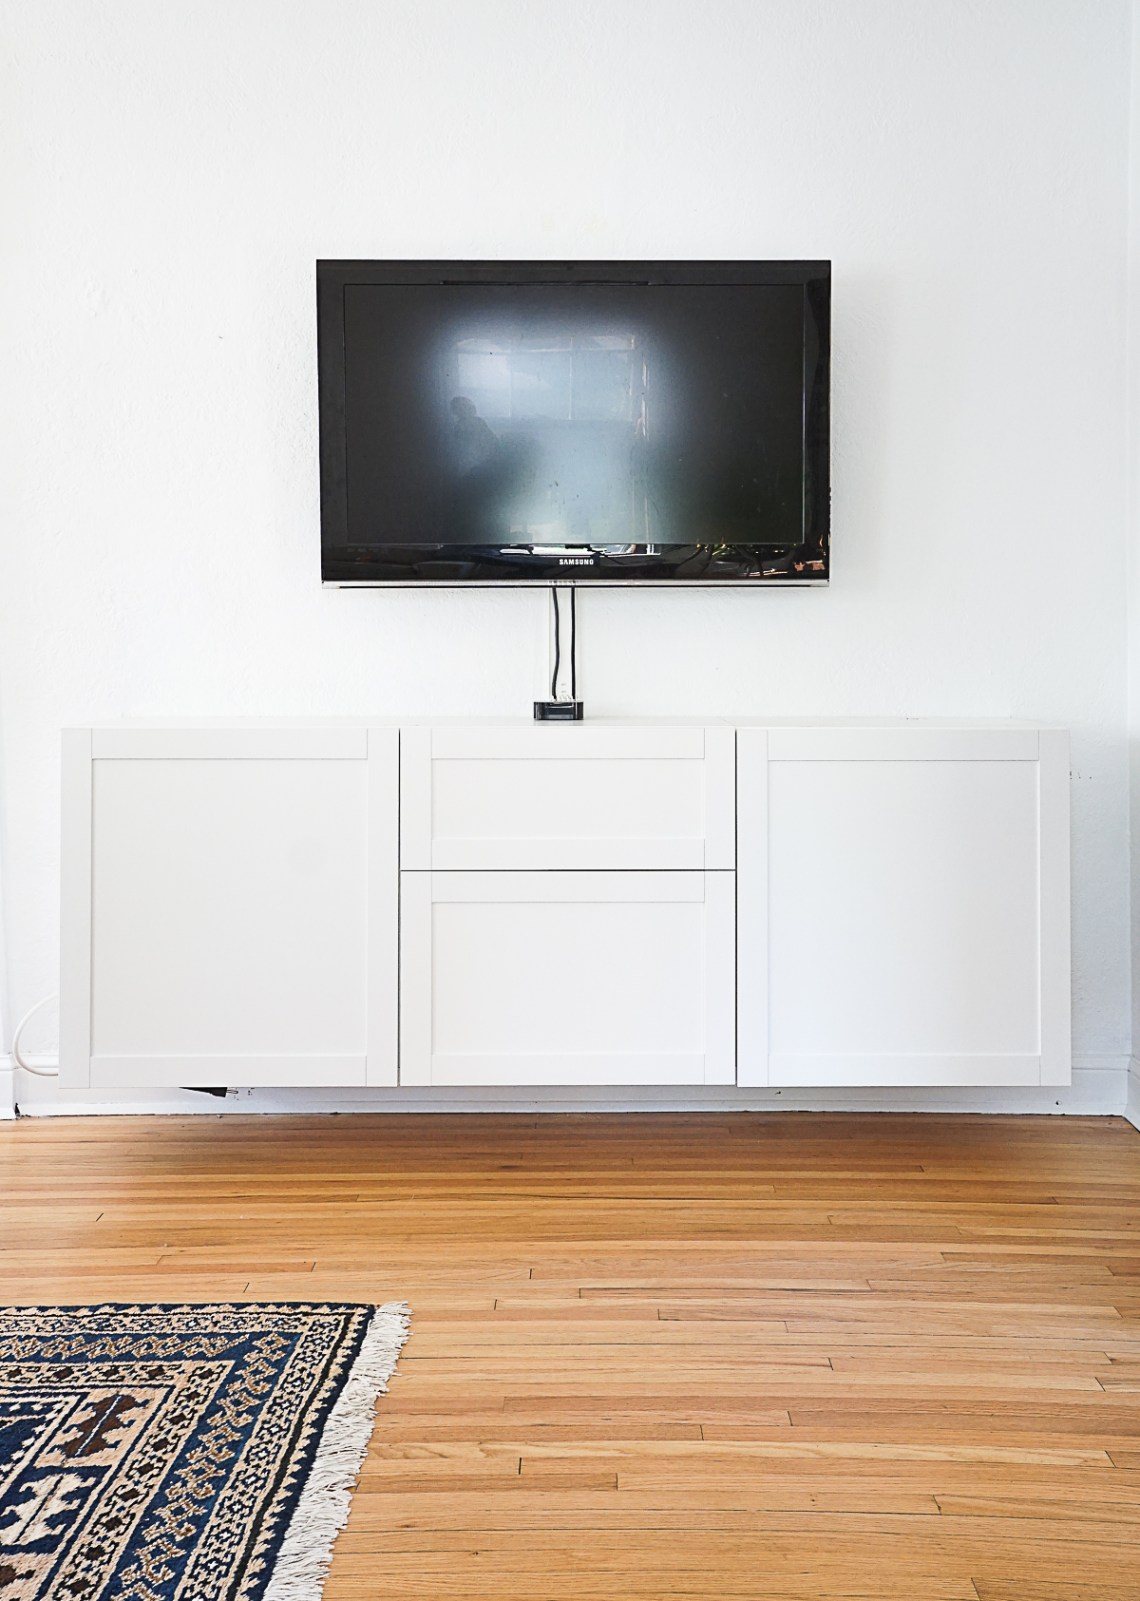 DIY a built-in floating media cabinet for storing tv accessories, kids toys, and beyond. Click for the complete tutorial!